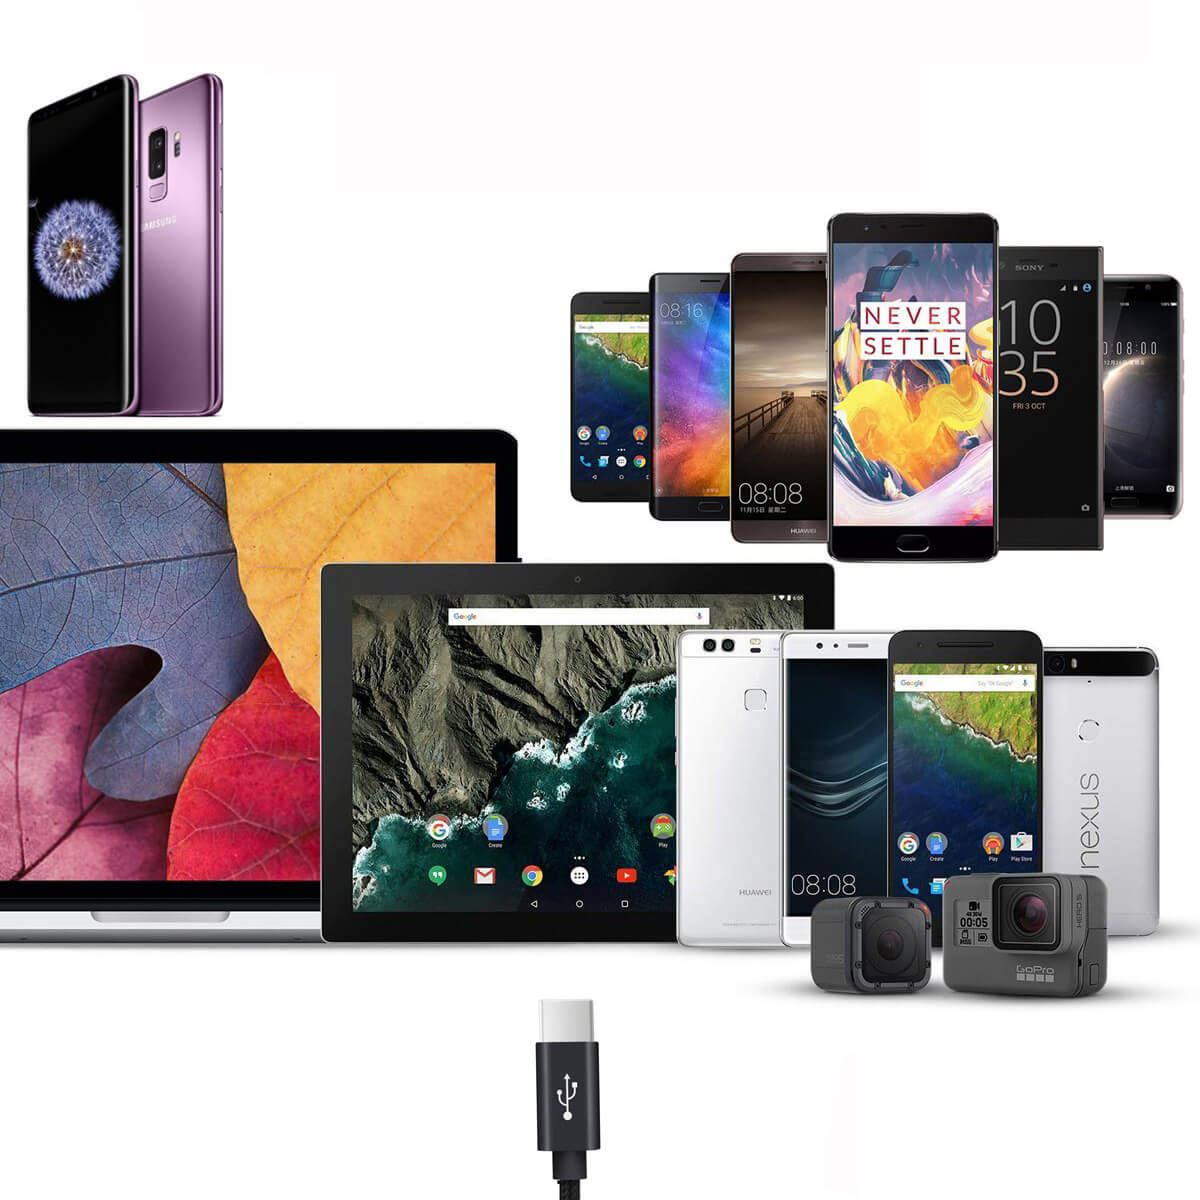 Type-C-USB-C-Sync-Fast-Charger-Charging-Cable-Samsung-Galaxy-S10-S9-S8-Plus-Lite thumbnail 7